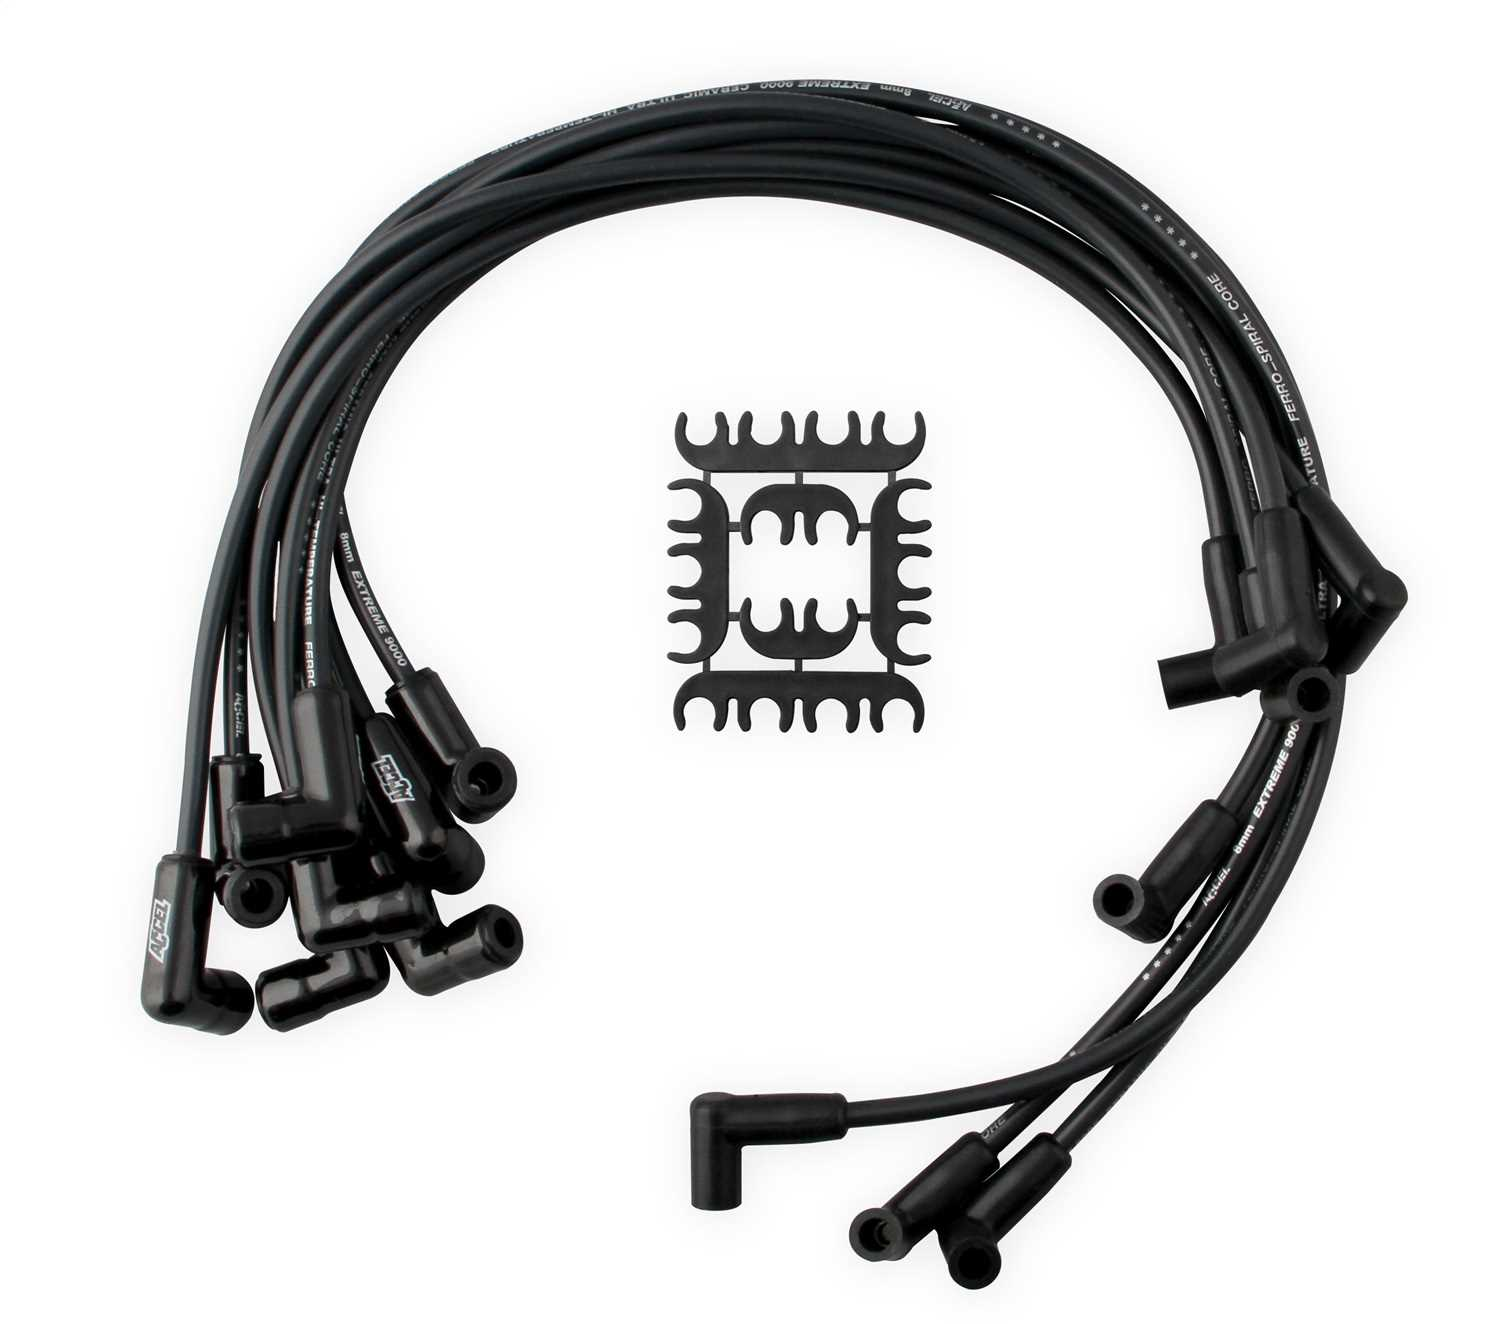 Accel Plug Wires Review on